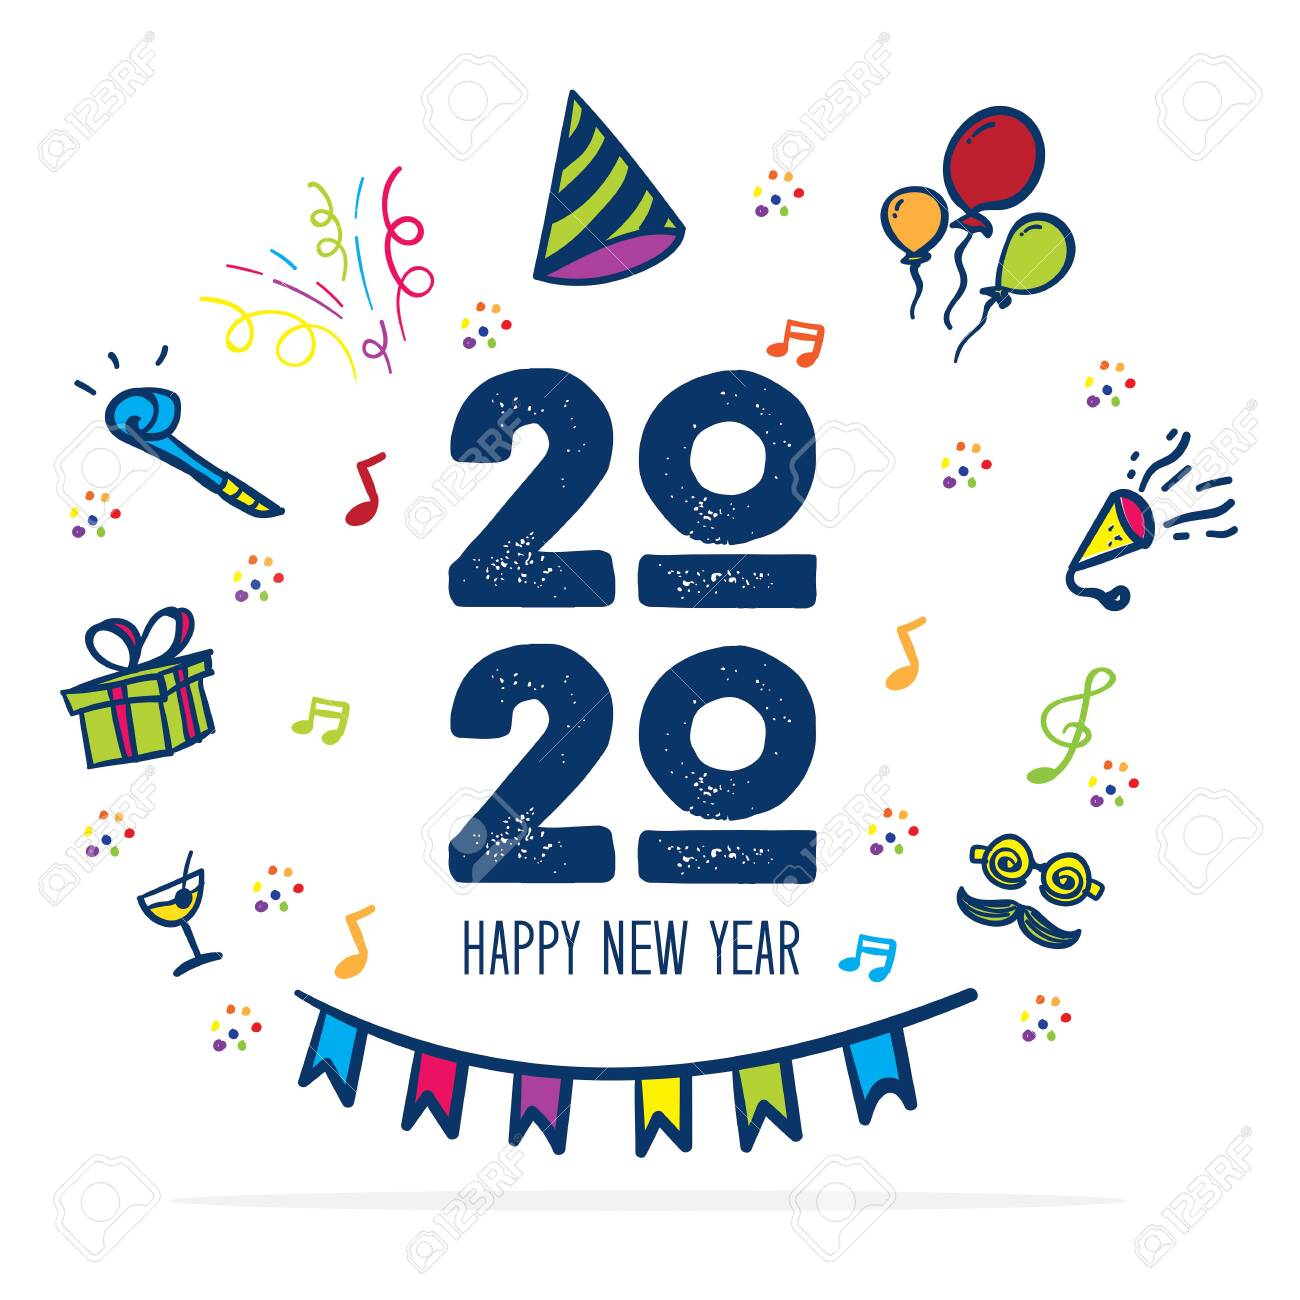 Funny Happy New Year 2020.Happy New Year 2020 Logo With Party Icon Doodle Hand Drawing